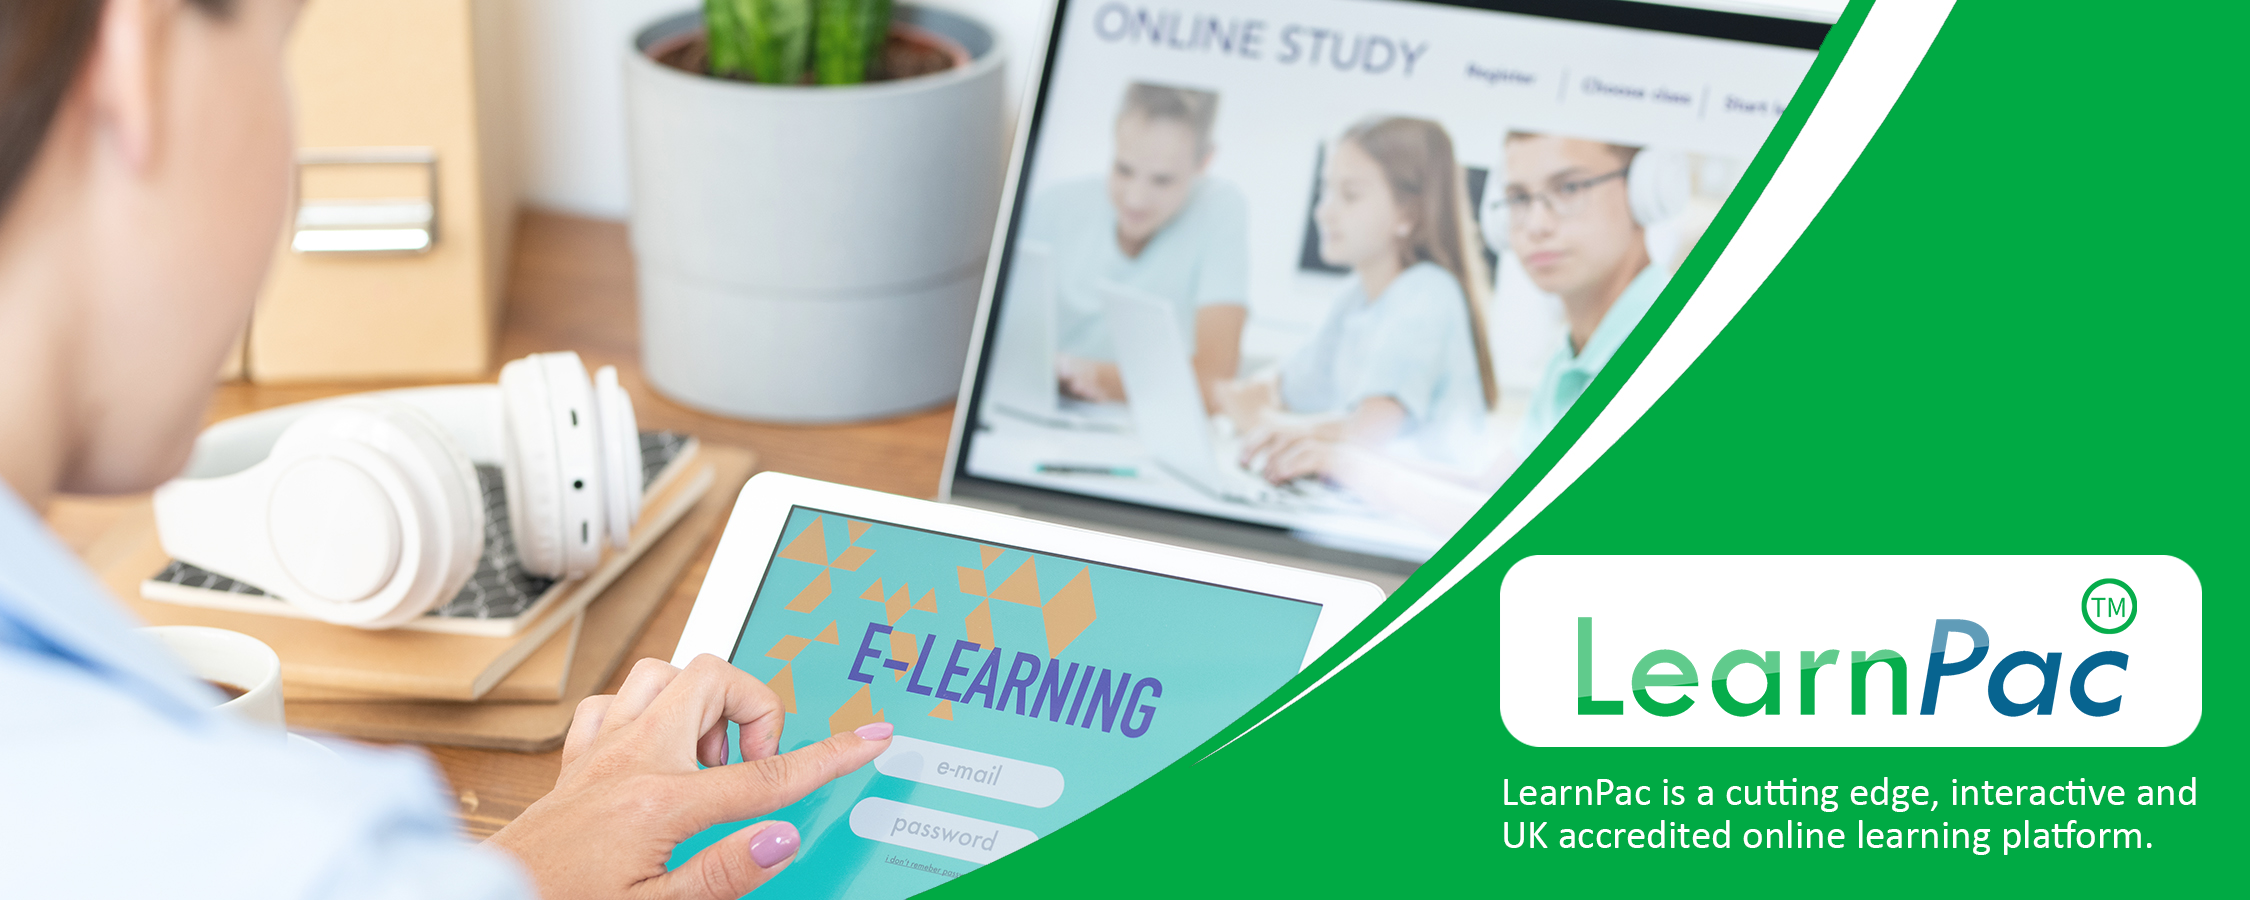 Mental Health Act - Online Learning Courses - E-Learning Courses - LearnPac Systems UK -